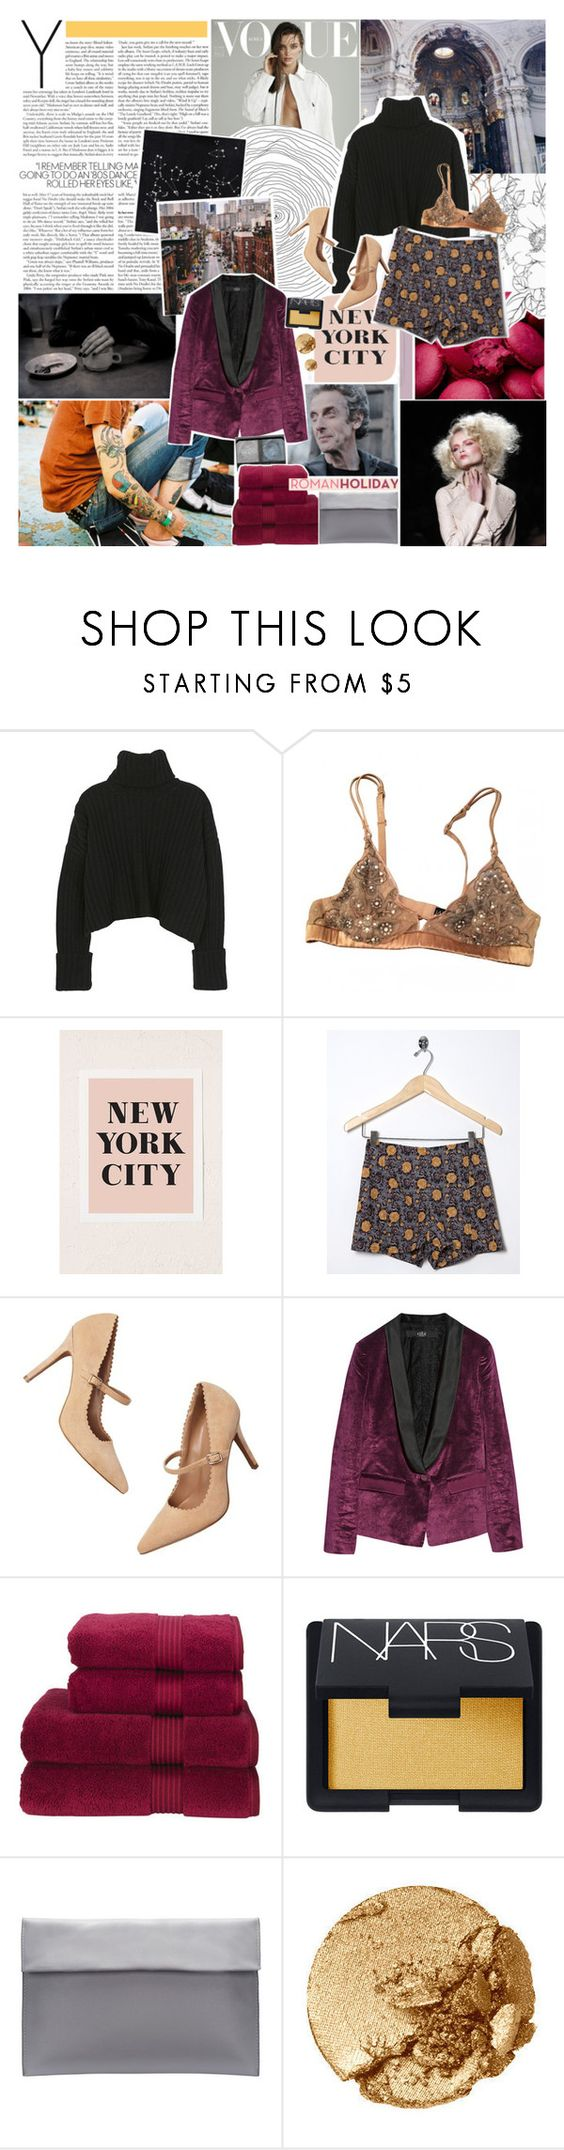 """""""CAPPVCCINO ; THE STORY BEHIND MY USERNAME"""" by cappvccino ❤ liked on Polyvore featuring La Perla, Motel, LOFT, TIBI, Kenzie, Christy, NARS Cosmetics, women's clothing, women's fashion and women"""